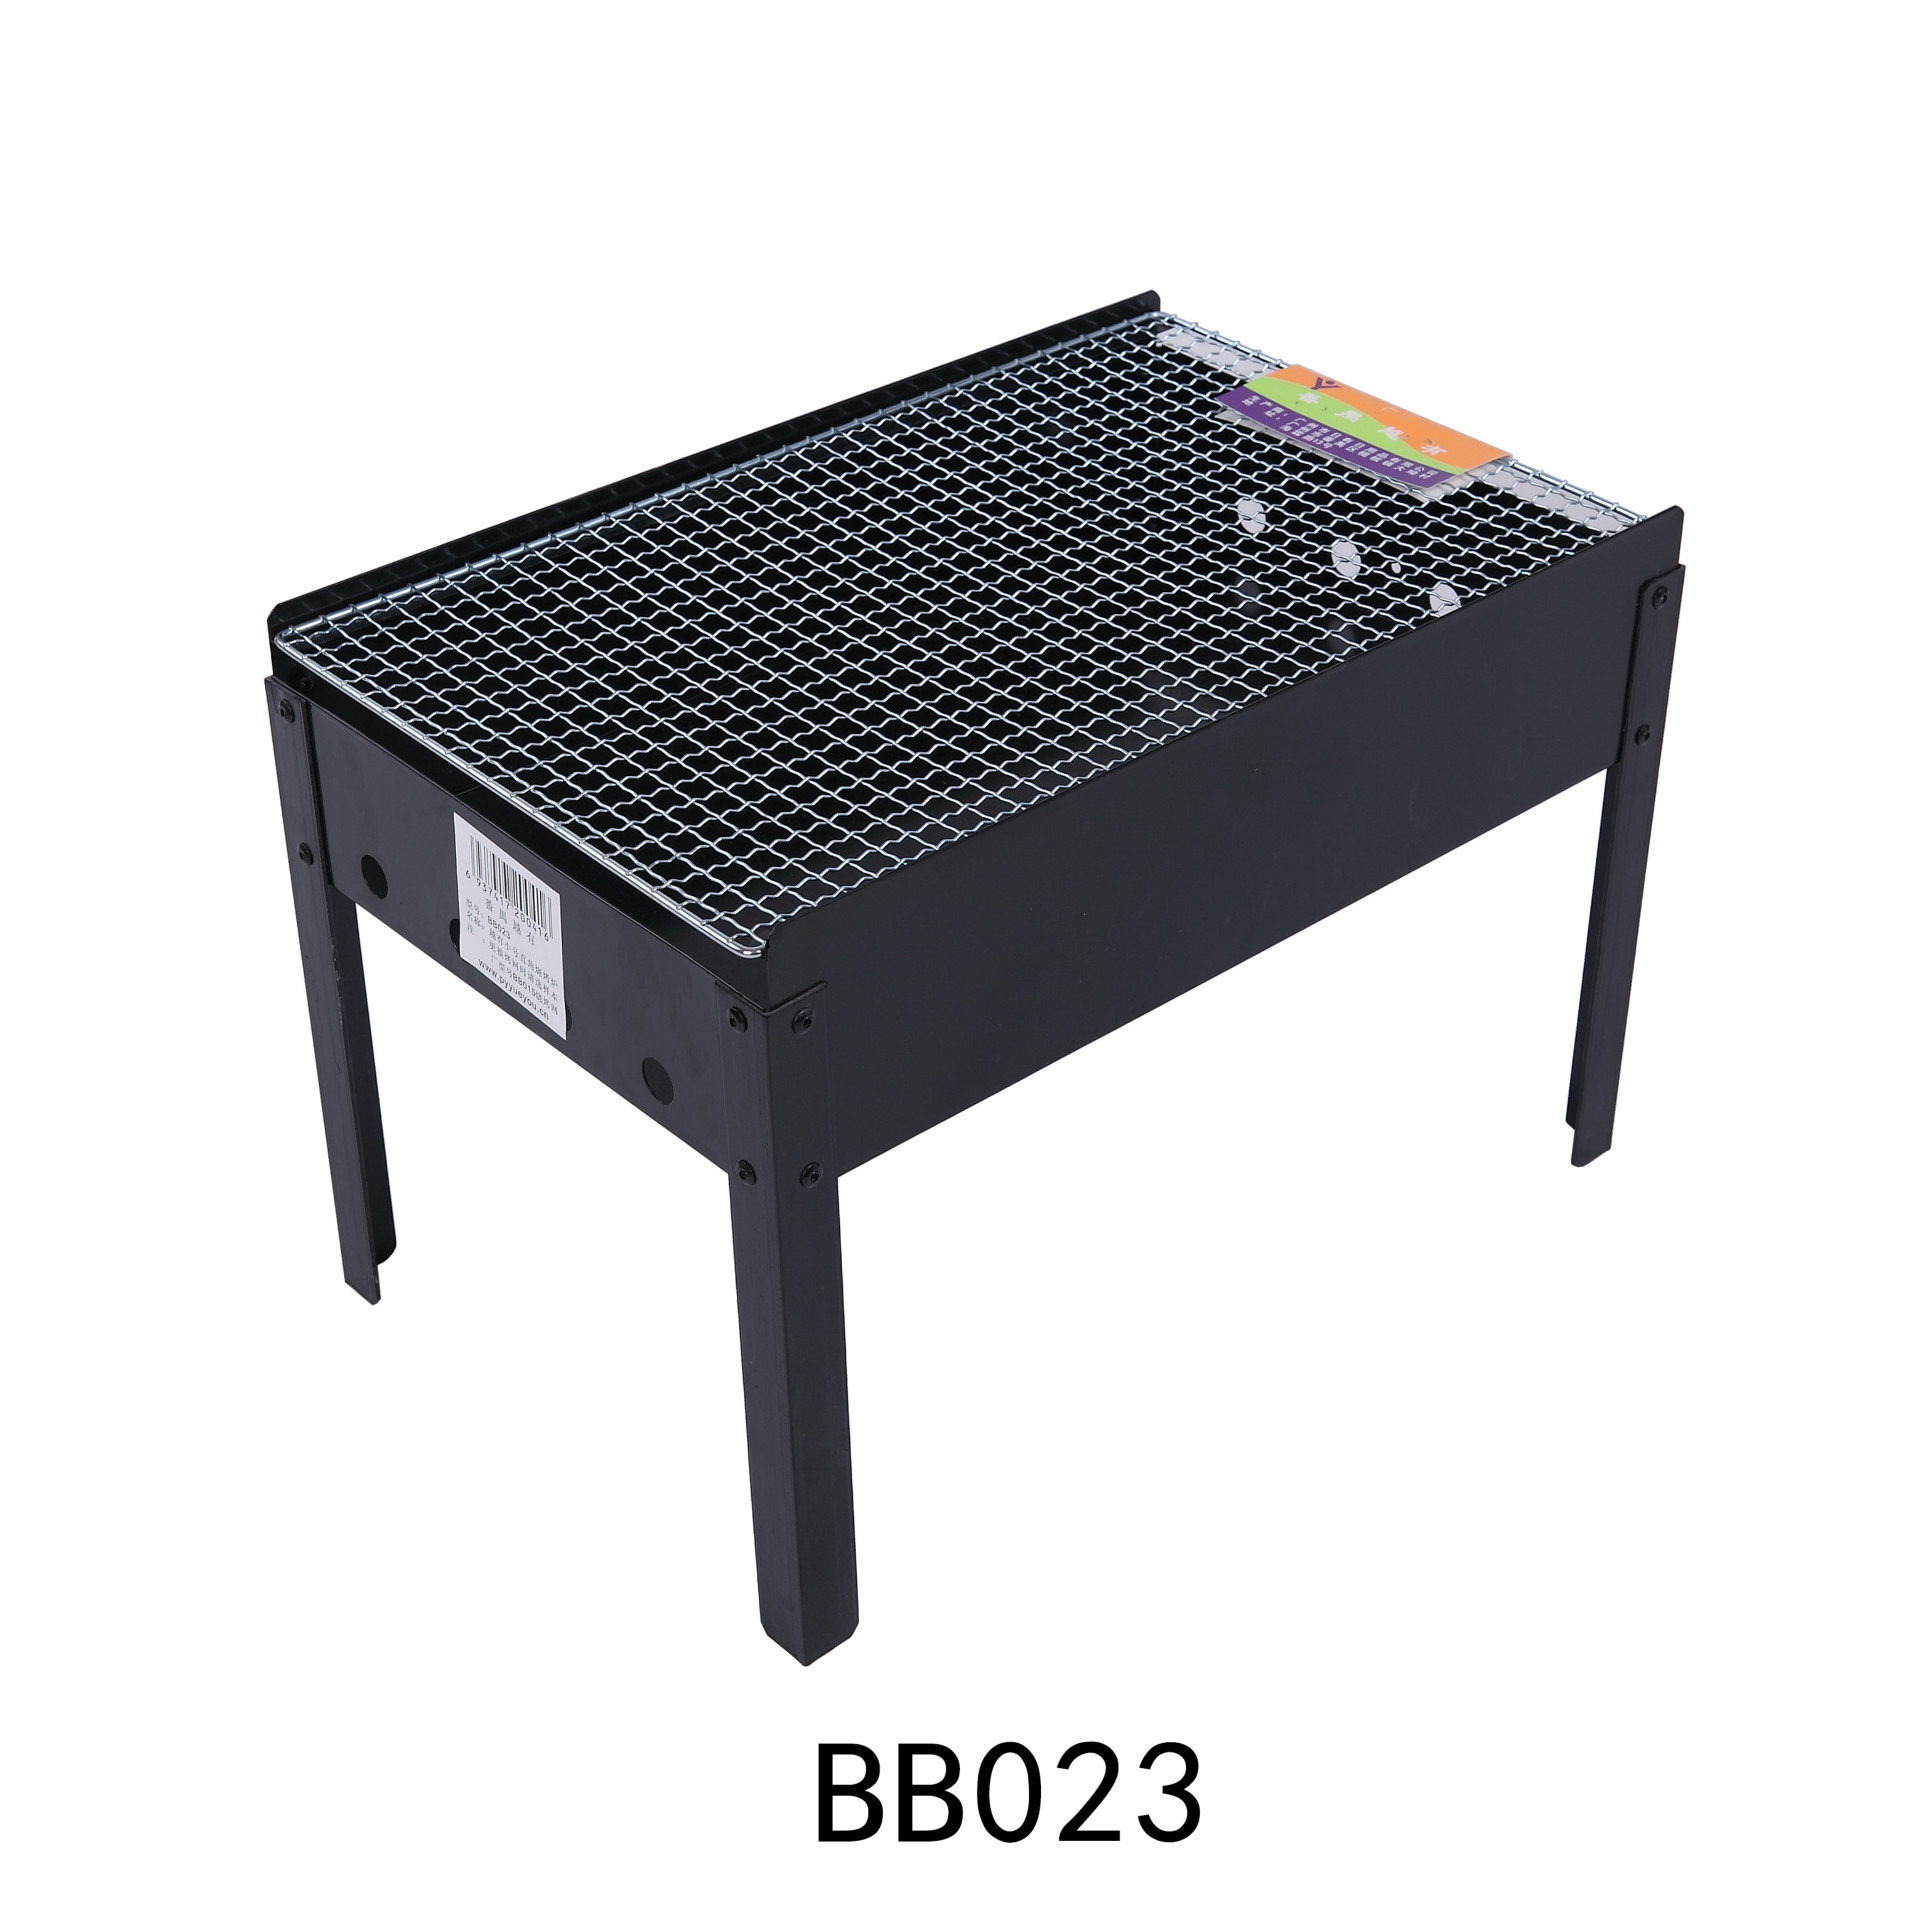 Bb023 Trumpet Straight Legs Burn Oven Charcoal Barbecue Pits Outdoor Tools In Bbq Grills From Home Garden On Aliexpress